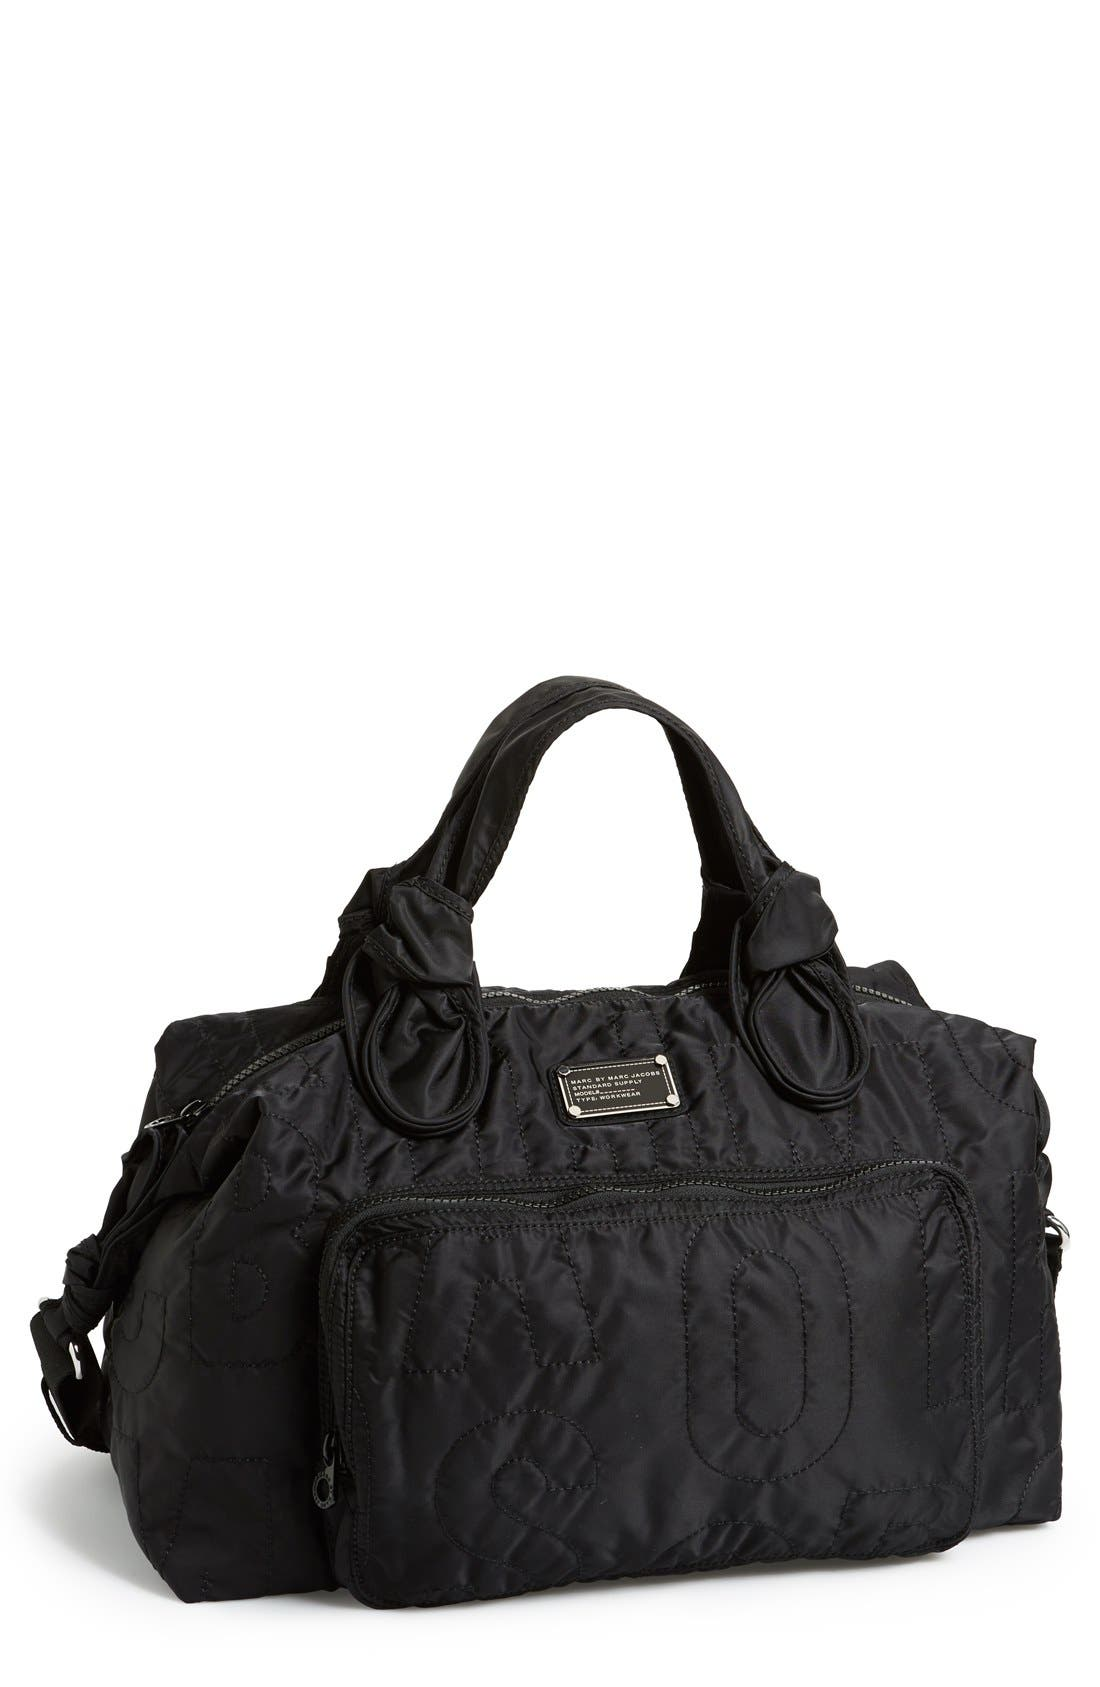 Alternate Image 1 Selected - MARC BY MARC JACOBS 'Preppy Nylon' Bag (18 Inch)